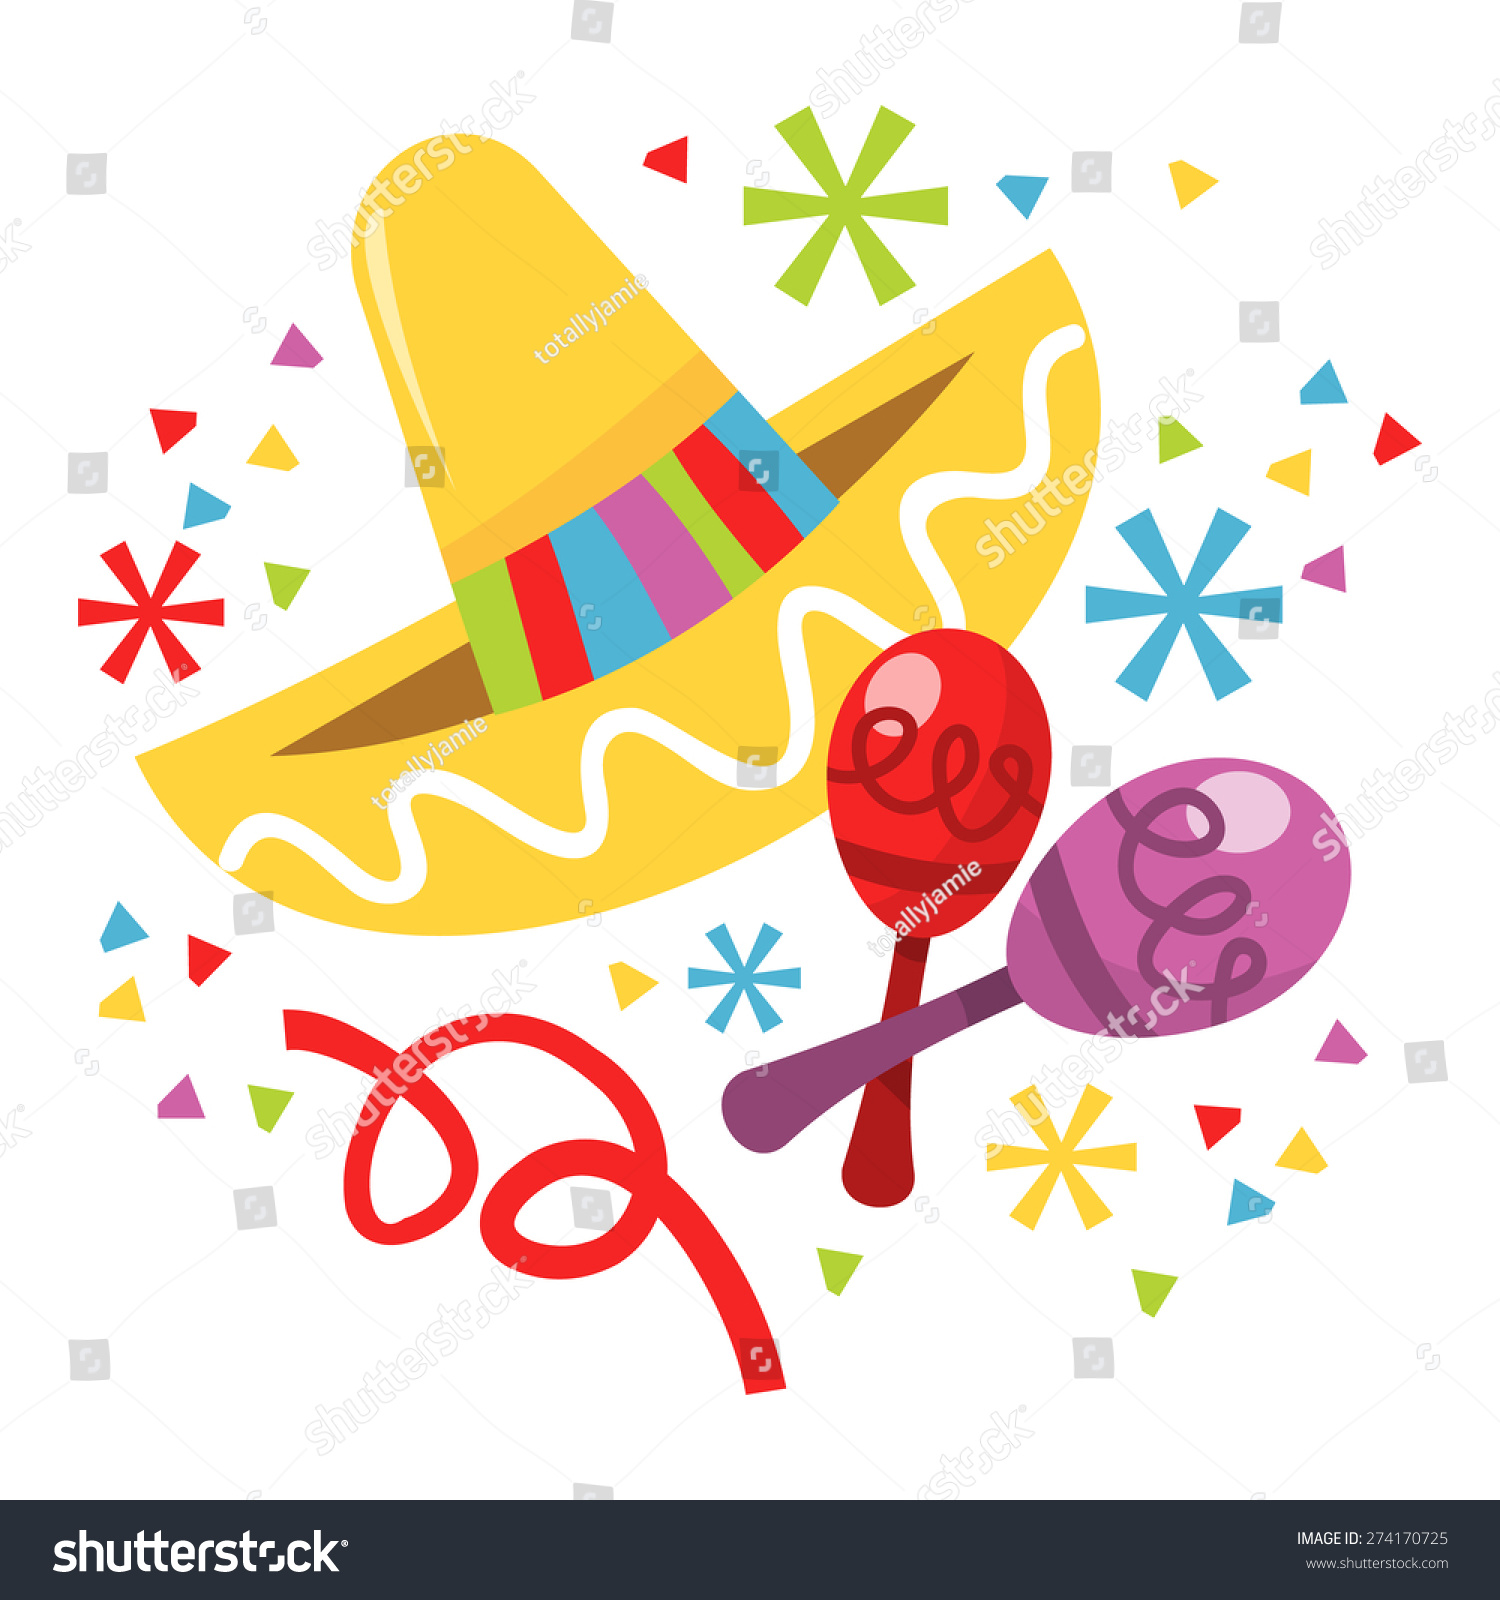 Maracas And Sombrero Clipart - More information